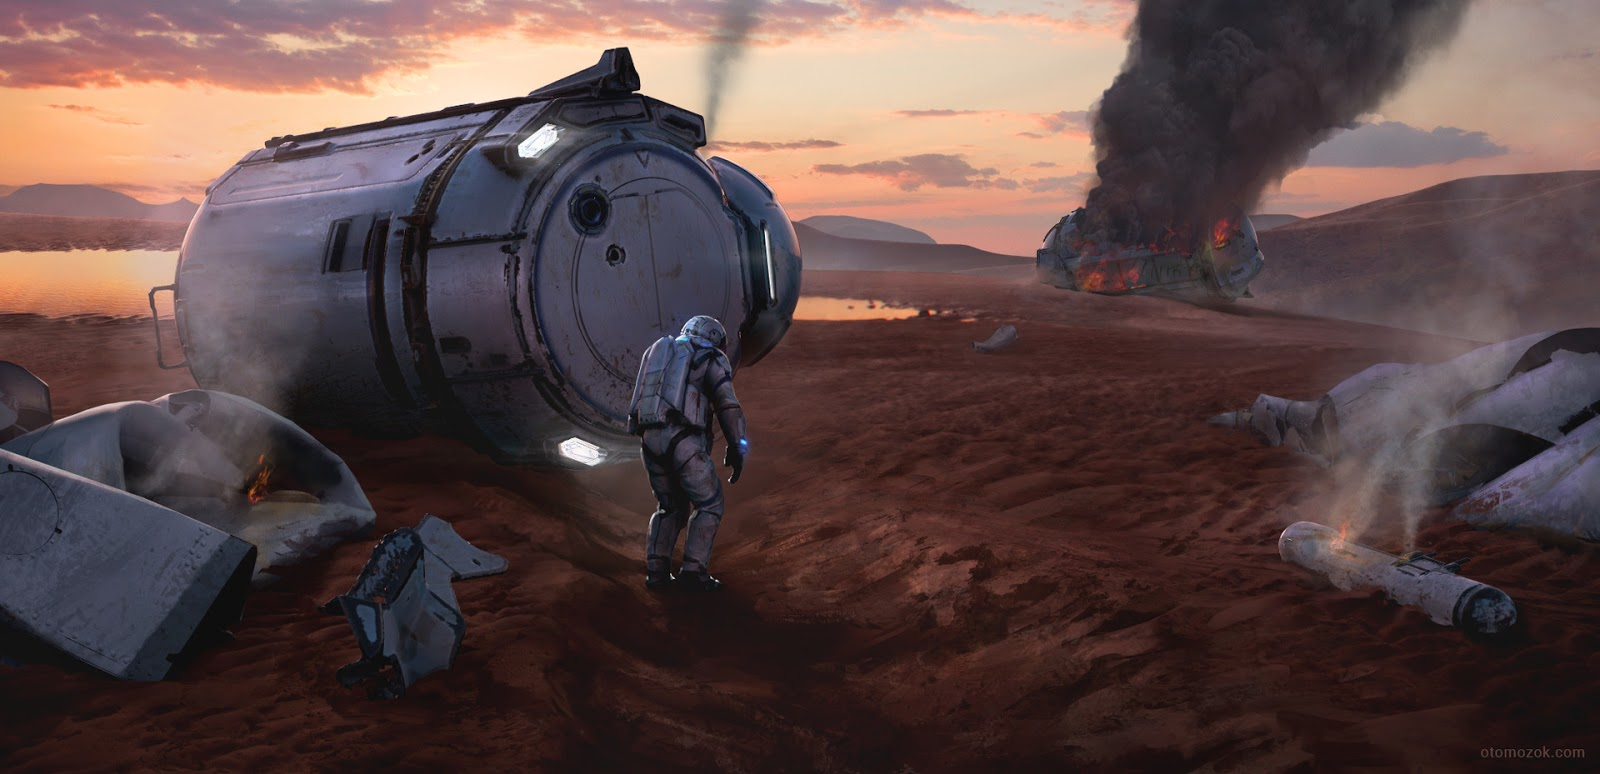 Remains of a crashed lander on Mars by Arthur Gurin